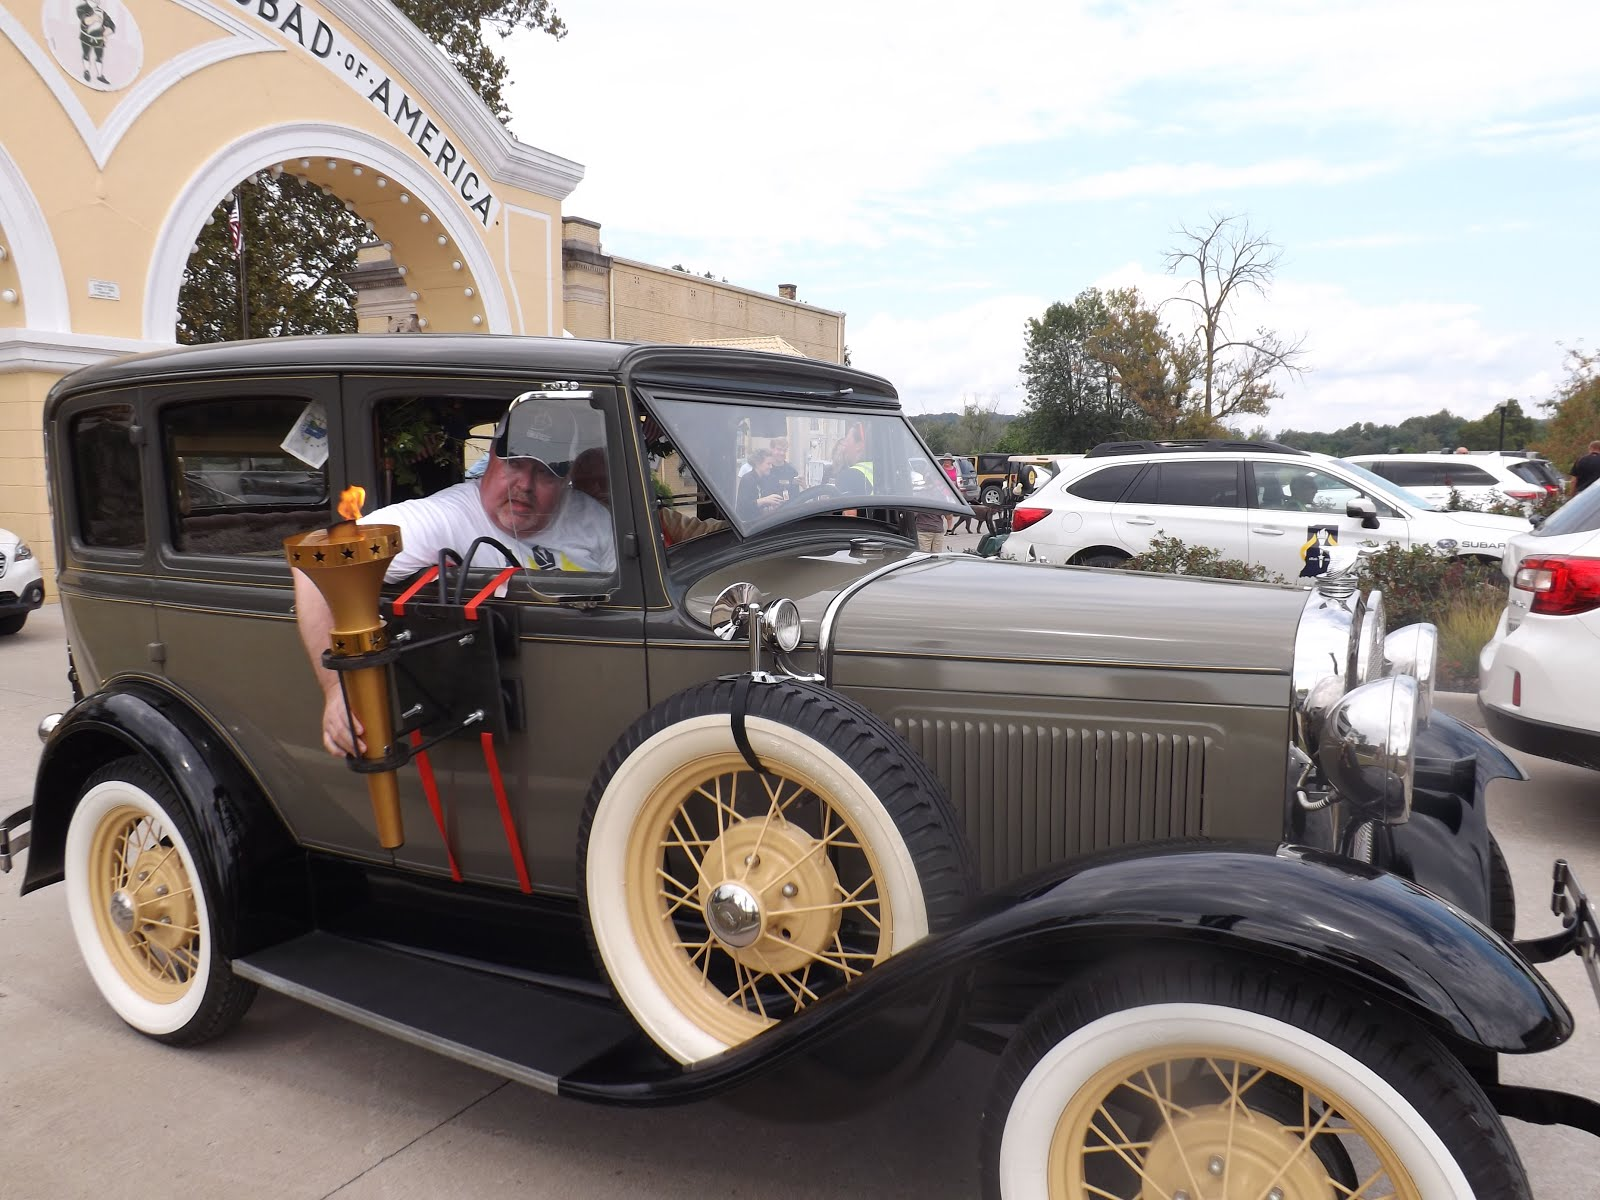 French lick antique car show